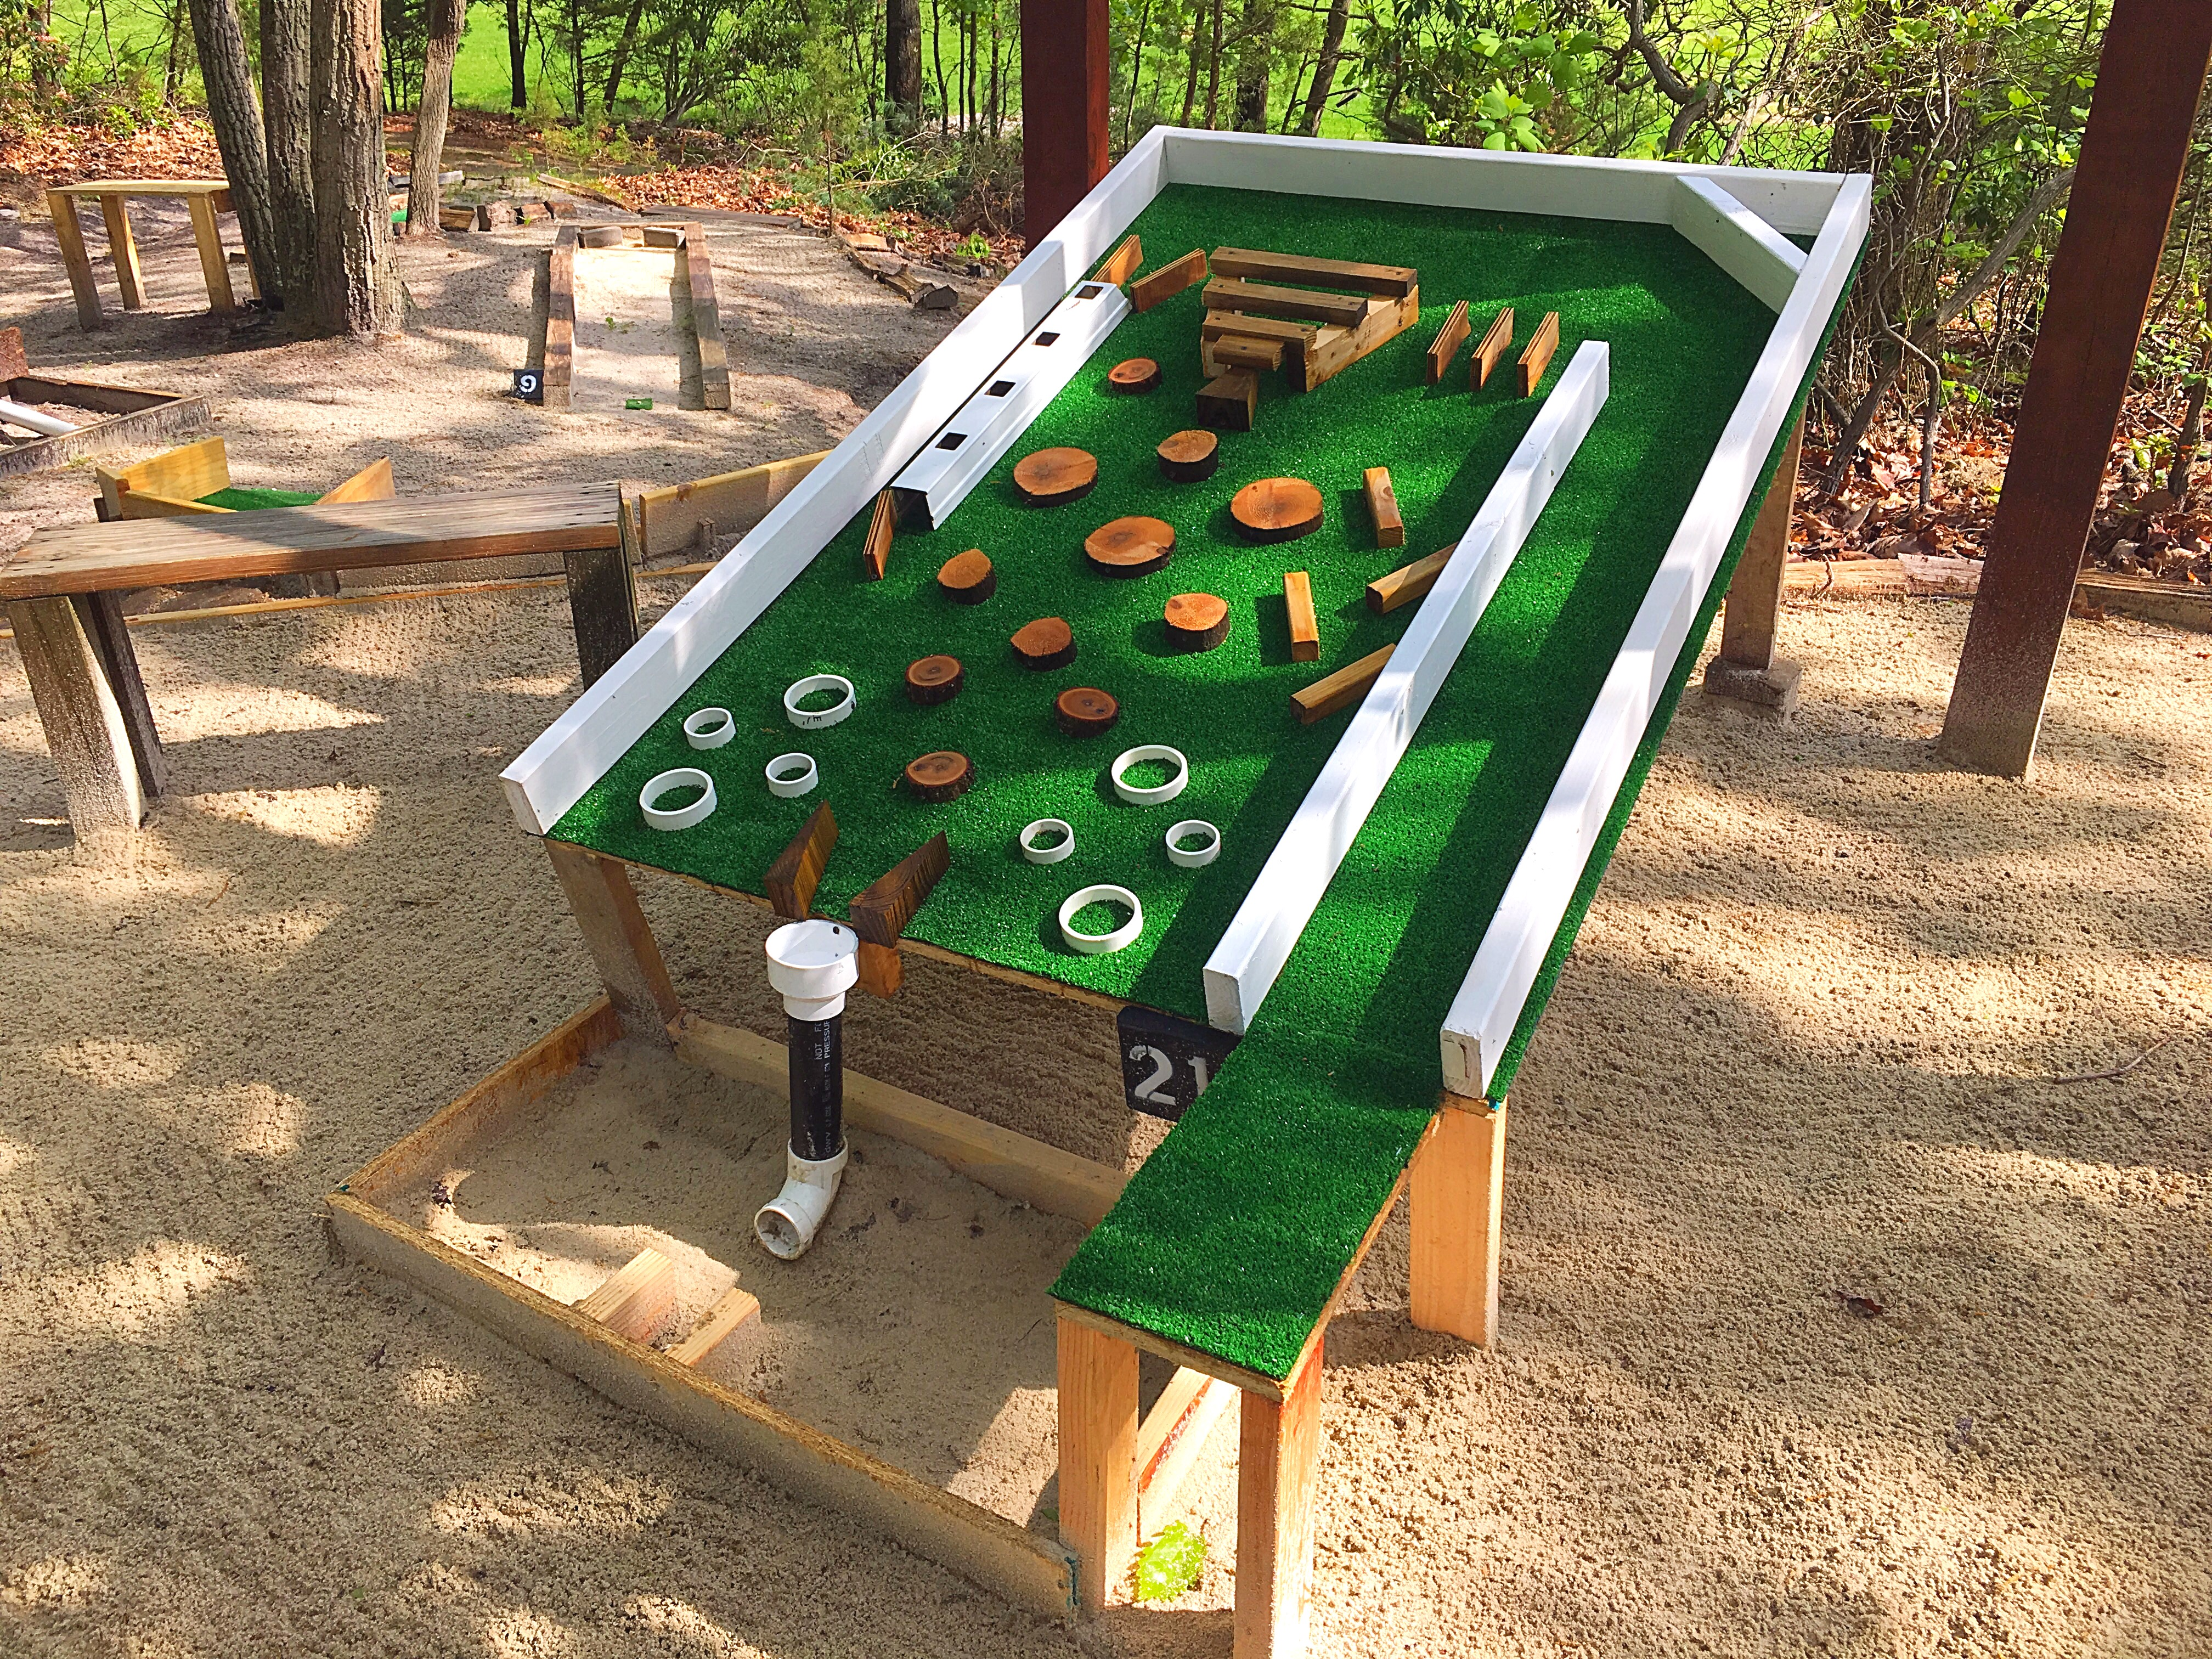 Medford Lakes Teen Builds Mini Golf Course In Backyard